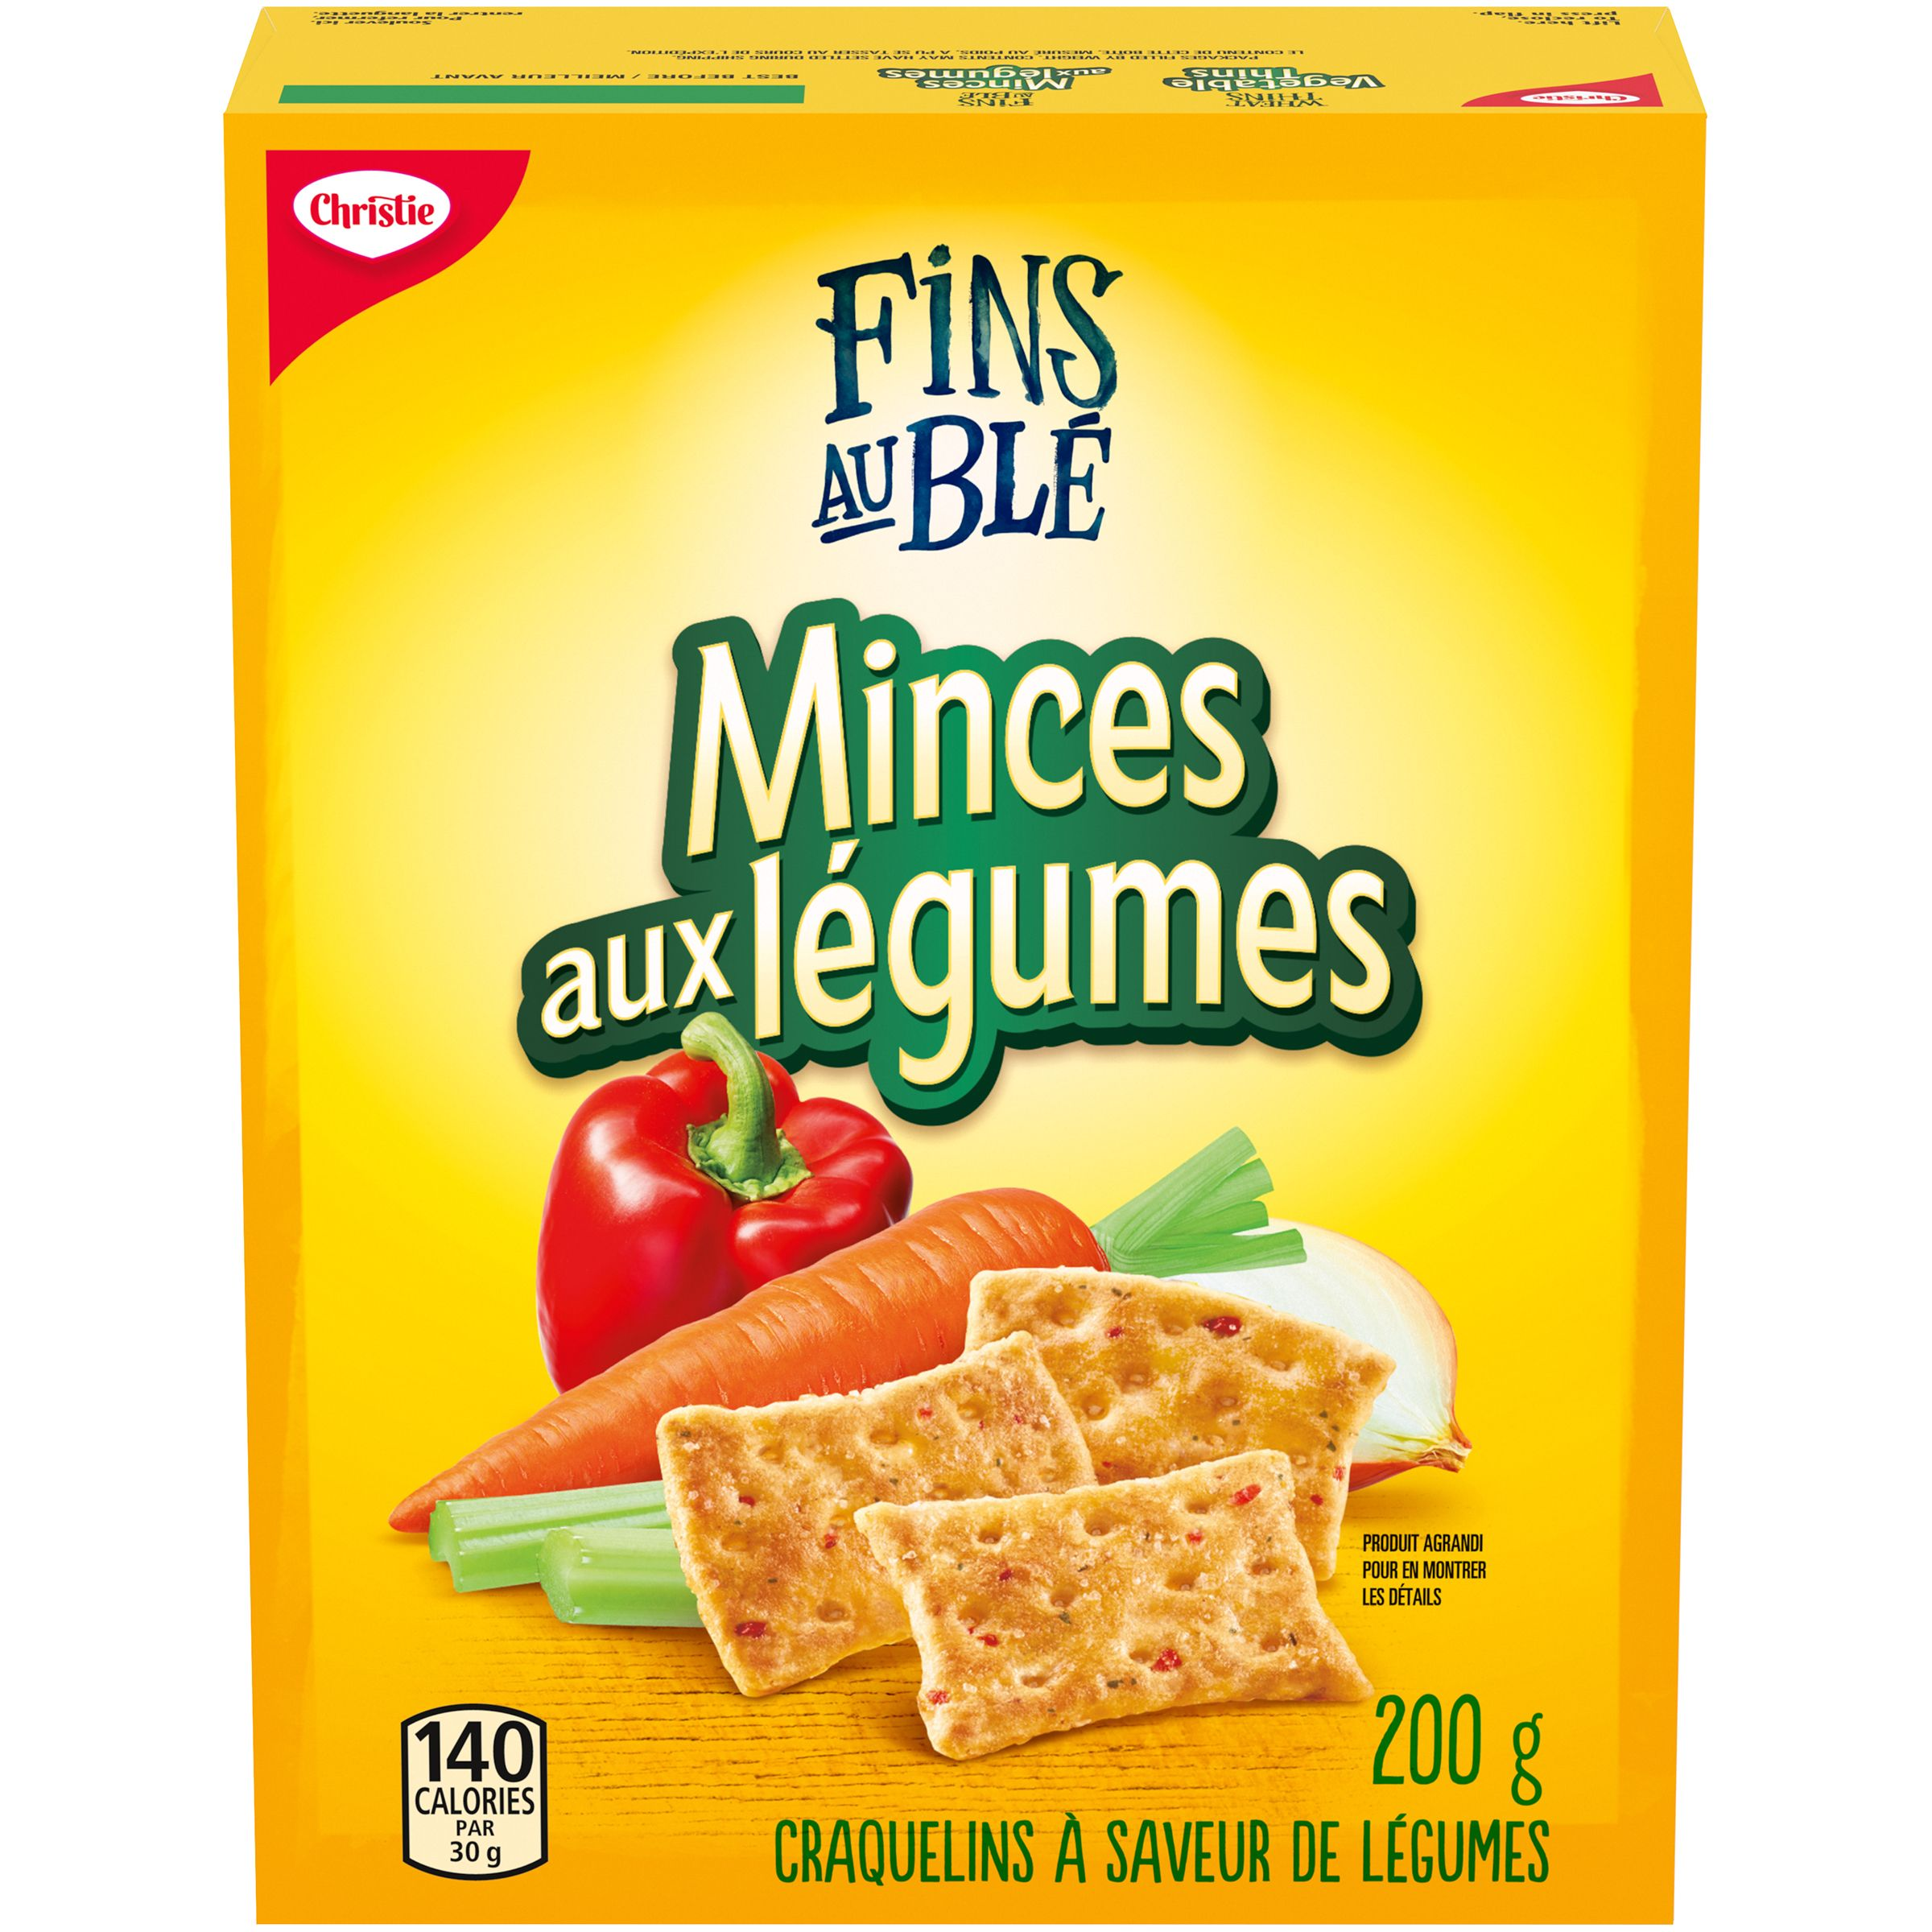 Wheat Thins Vegetable Thins Crackers 200 G